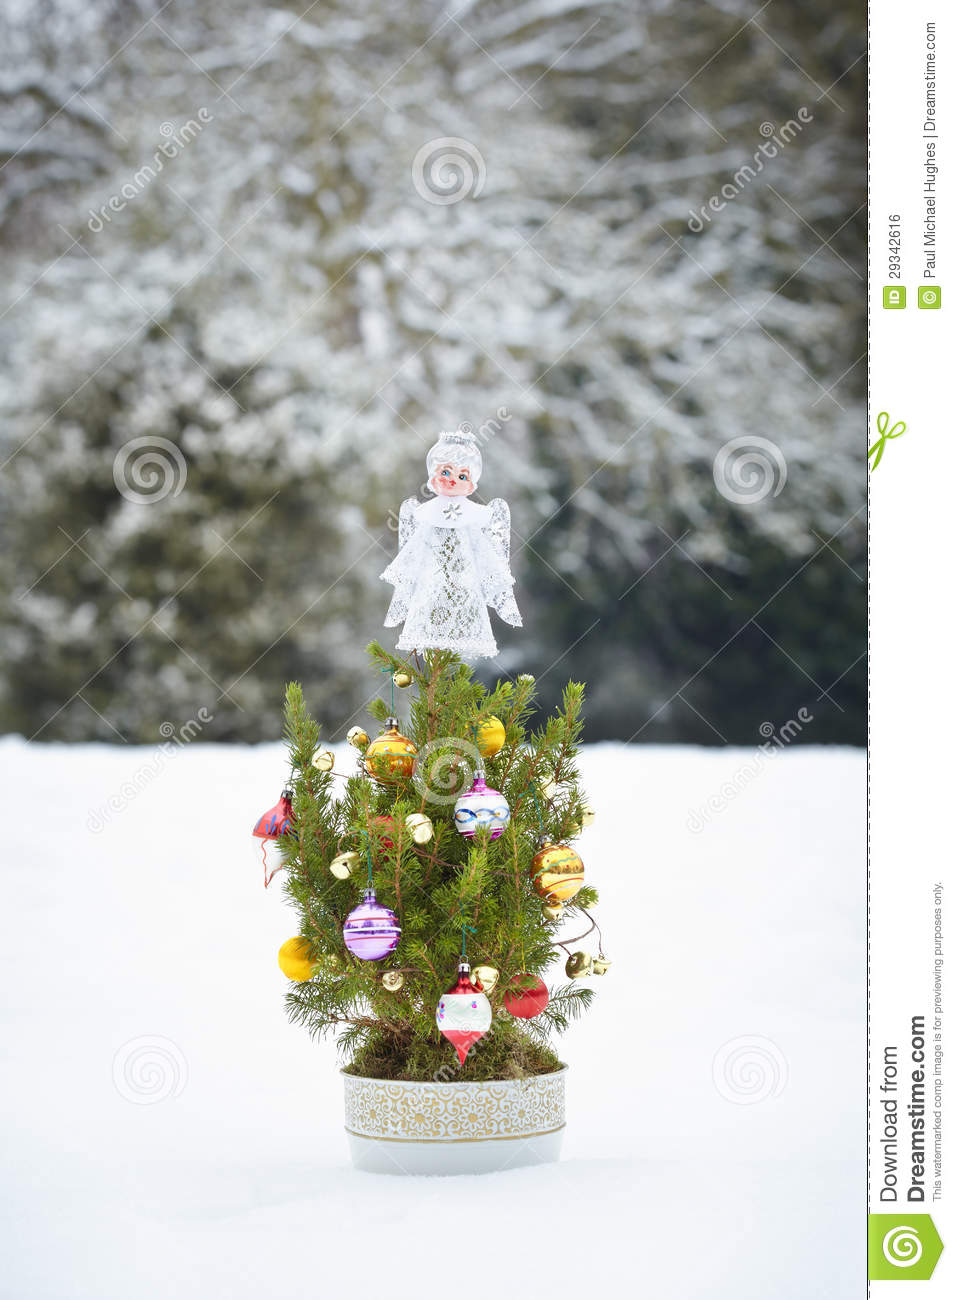 Small Decorated Christmas Tree Royalty Free Stock Image - Image ...